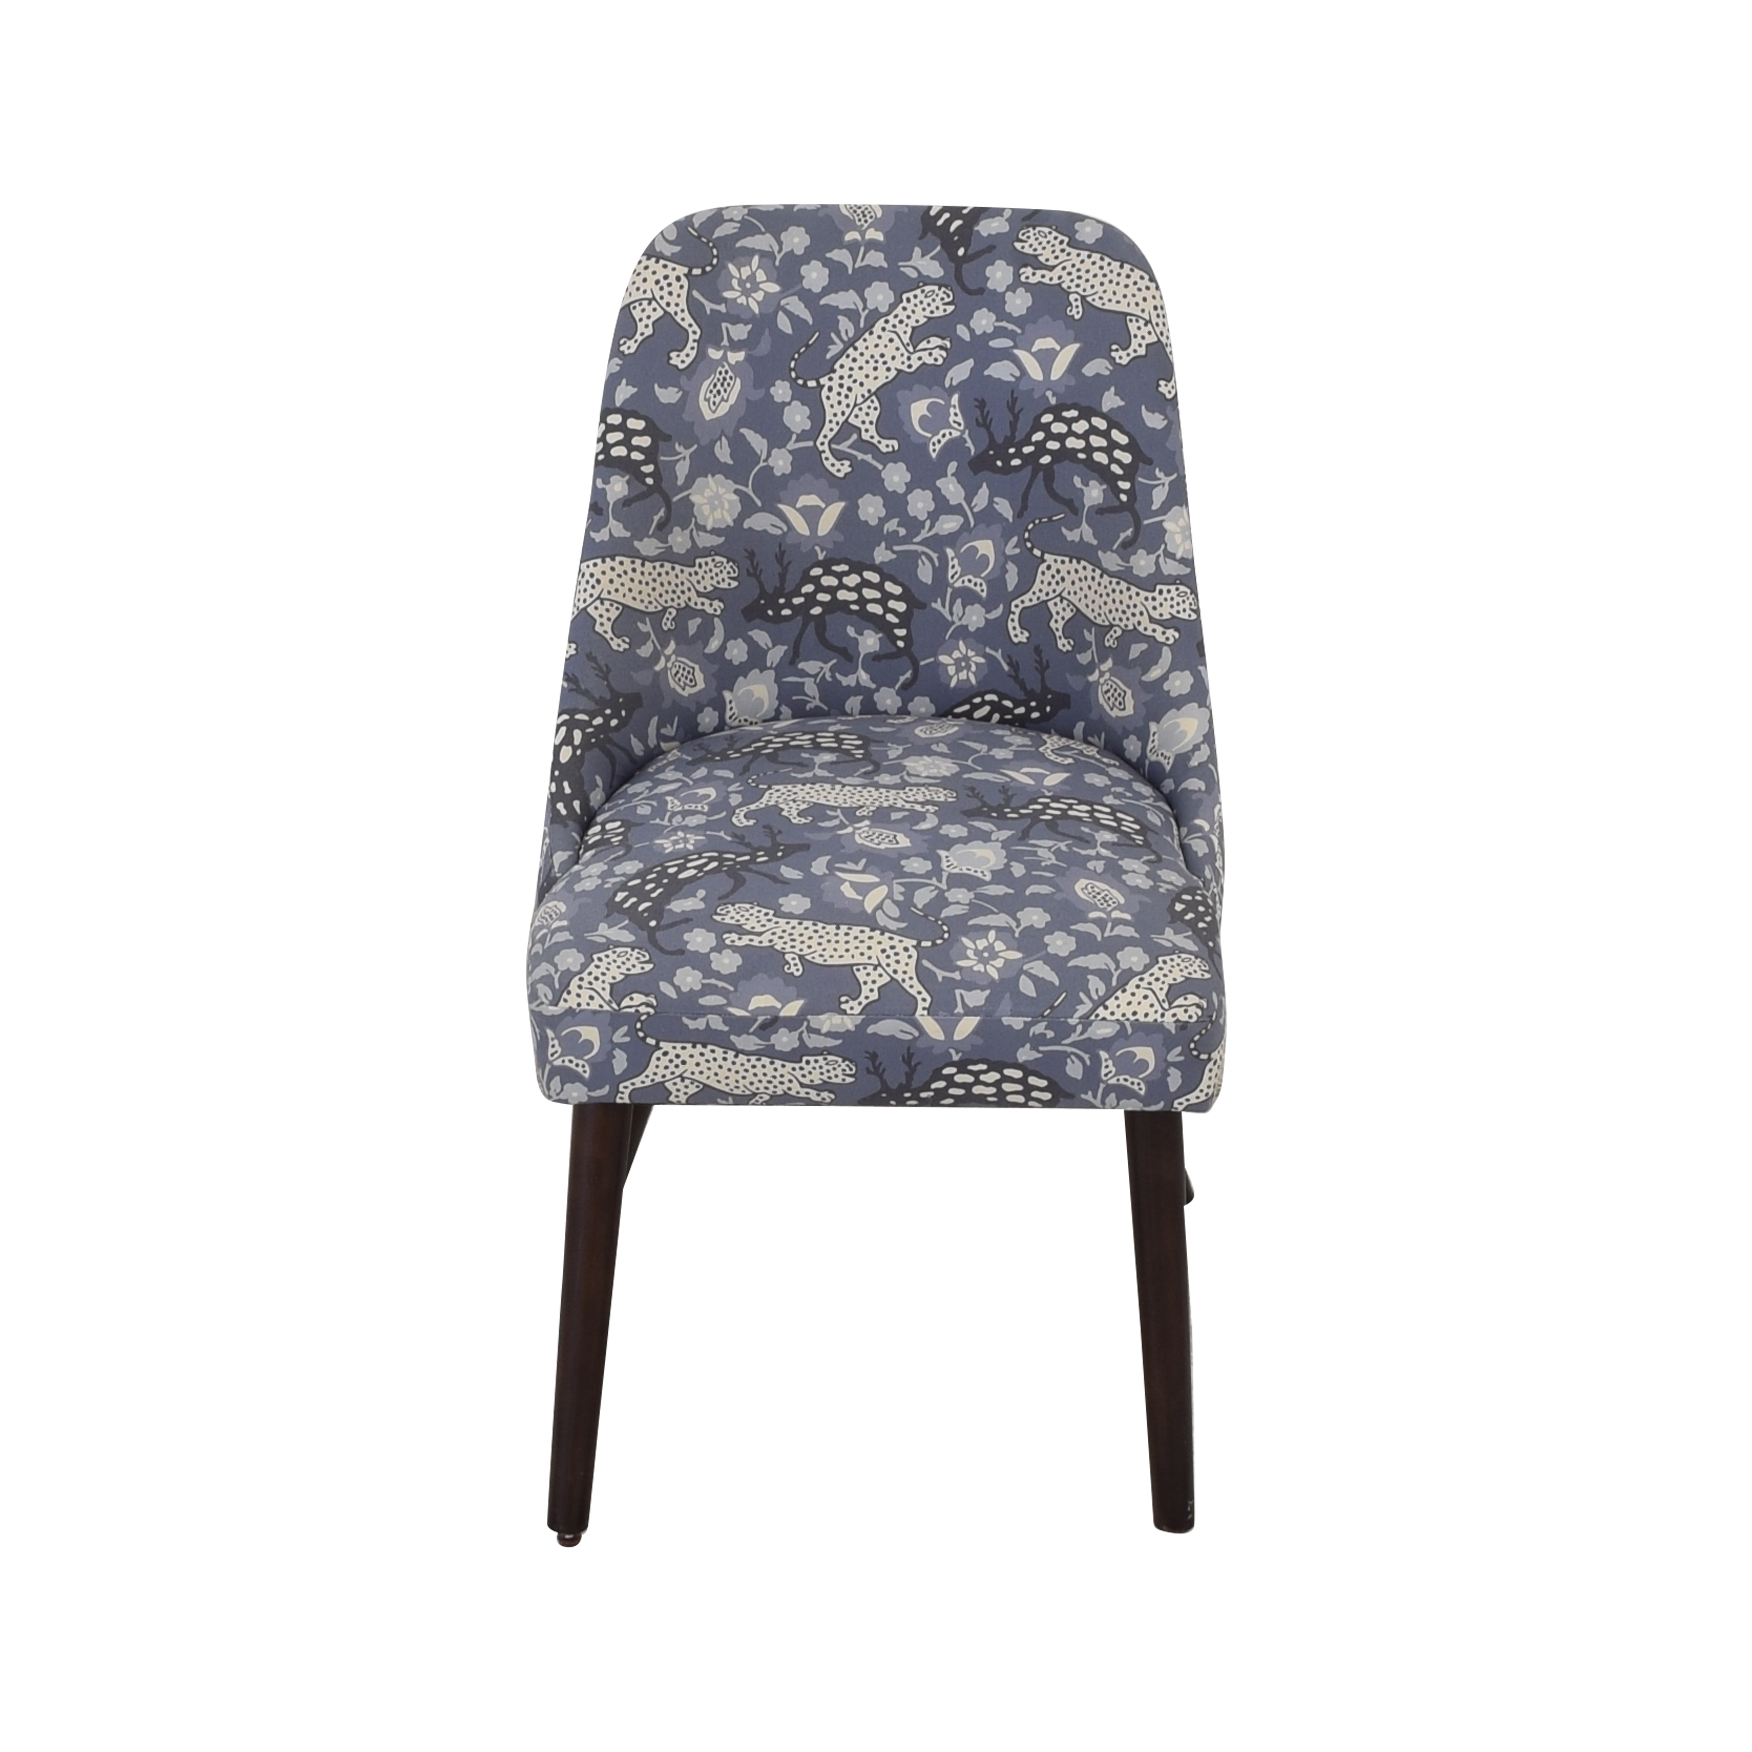 Skyline Furniture Skyline Patterned Upholstered Dining Chair discount